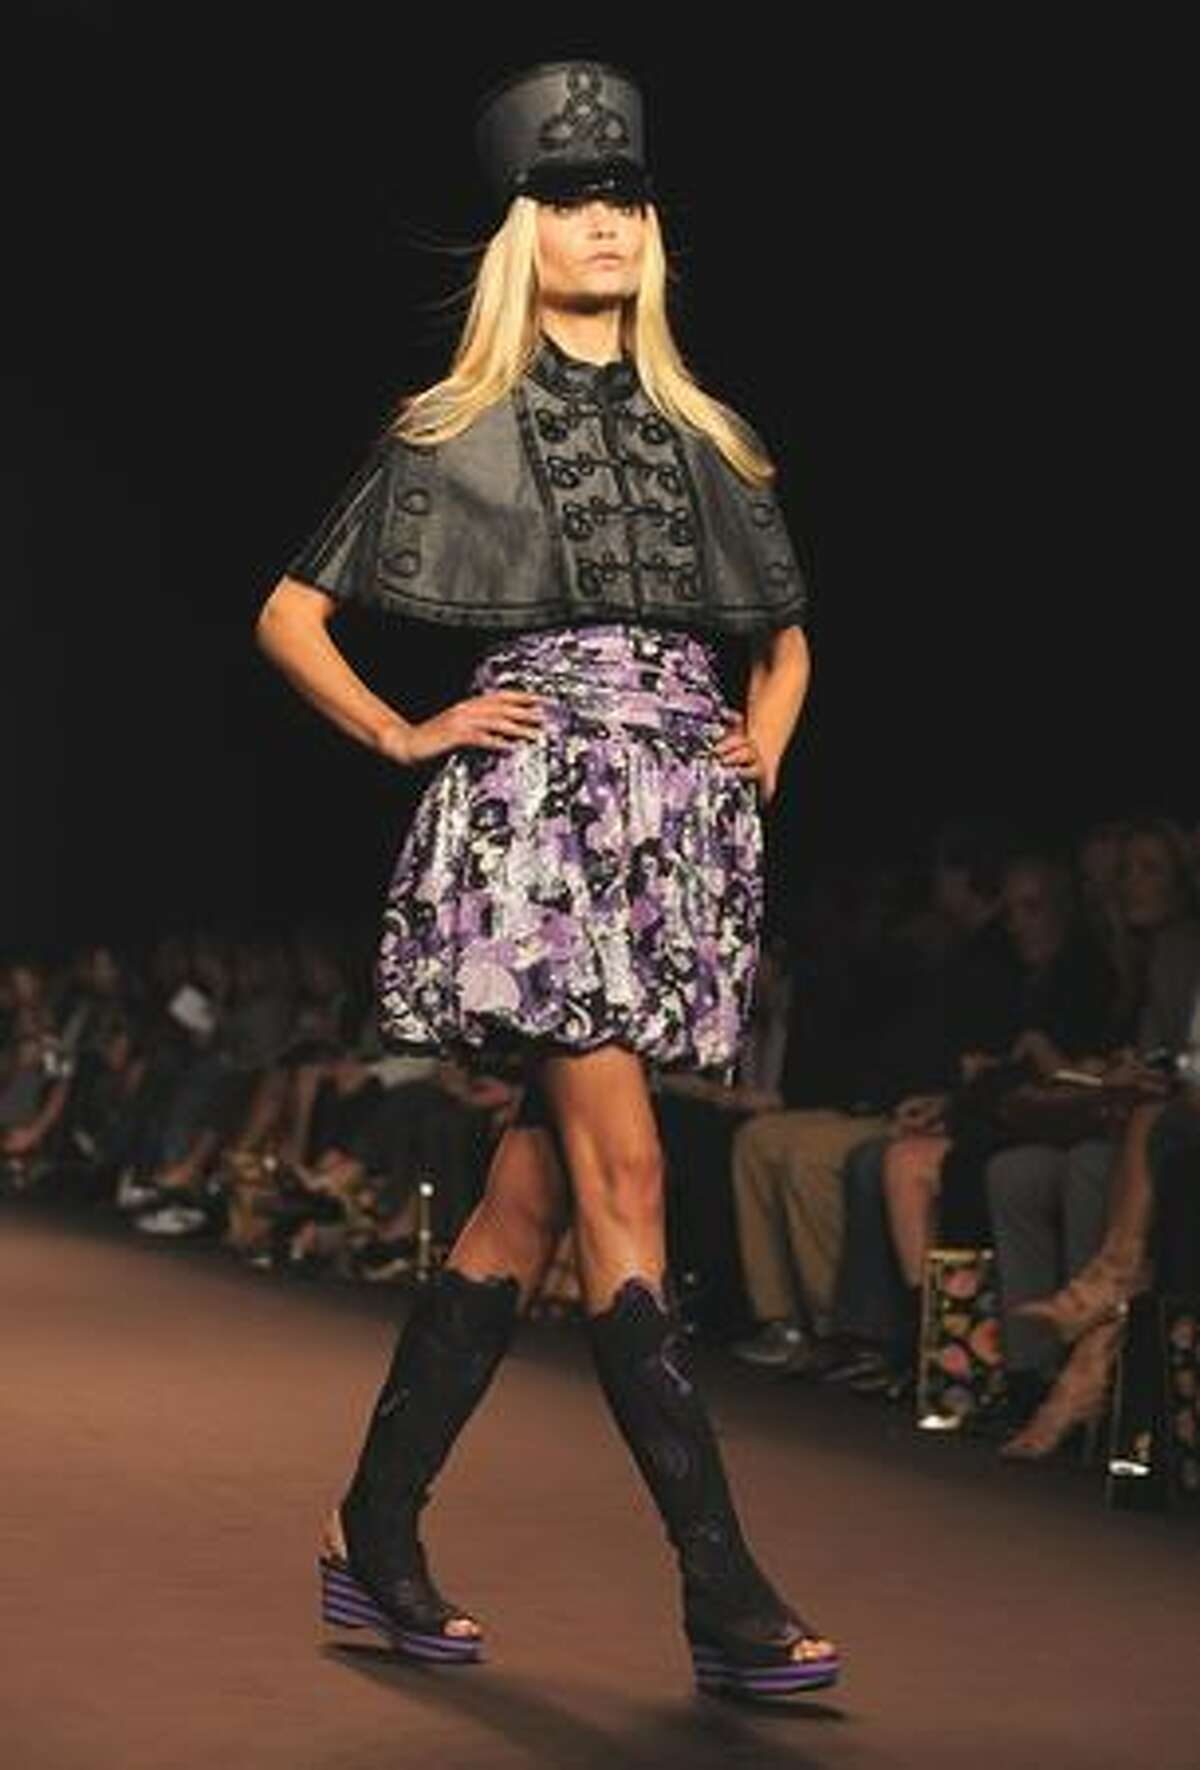 A model presents an outfit at the Anna Sui show during the spring 2010 Mercedes-Benz Fashion Week in New York on Wednesday, Sept. 16, 2009.